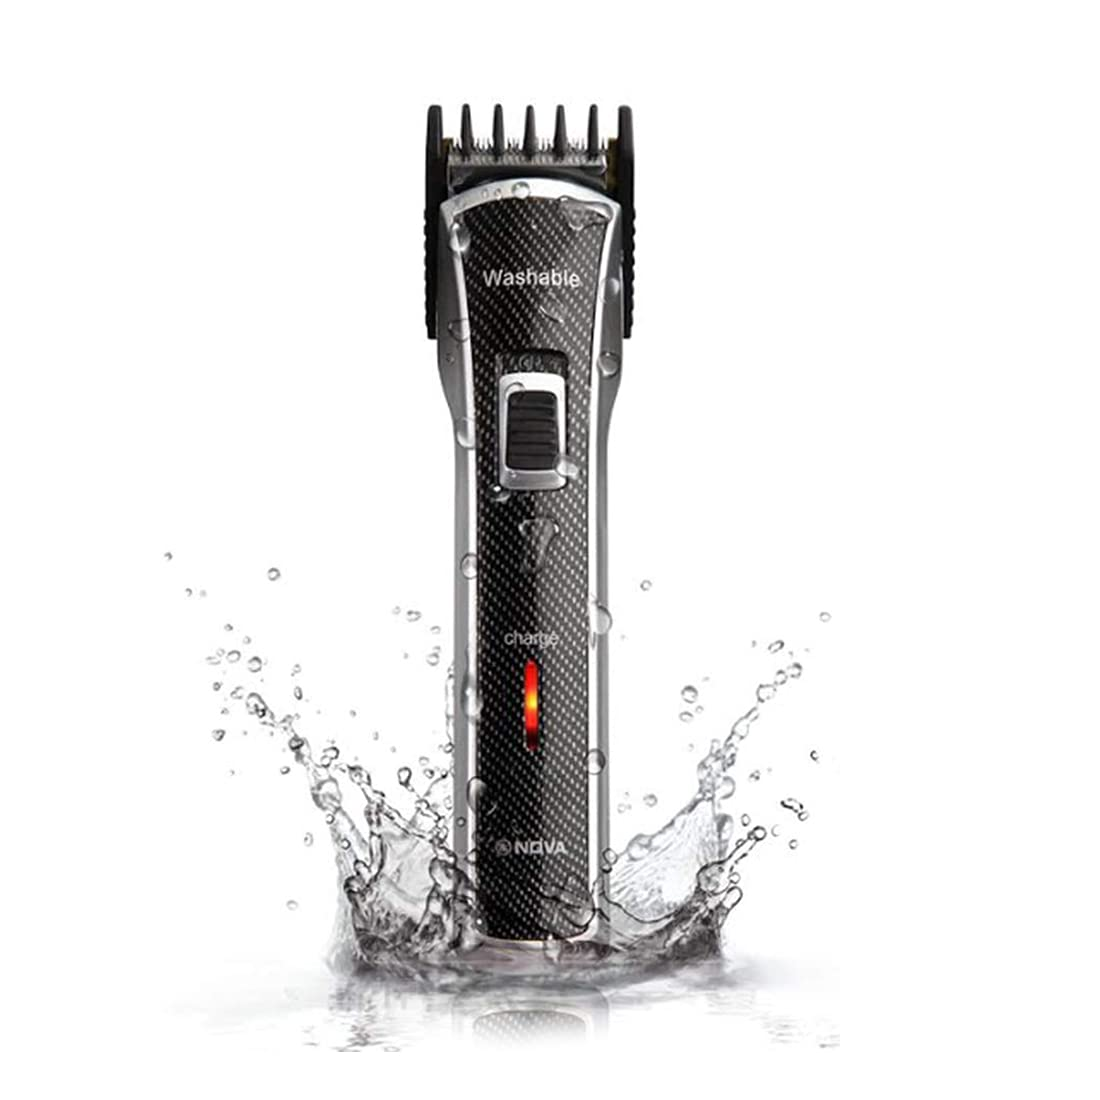 Nova NHT   1020 Waterproof   Rechargeable Cordless: 30 Minutes Runtime Beard Trimmer for Men  Black  Beard Trimmers